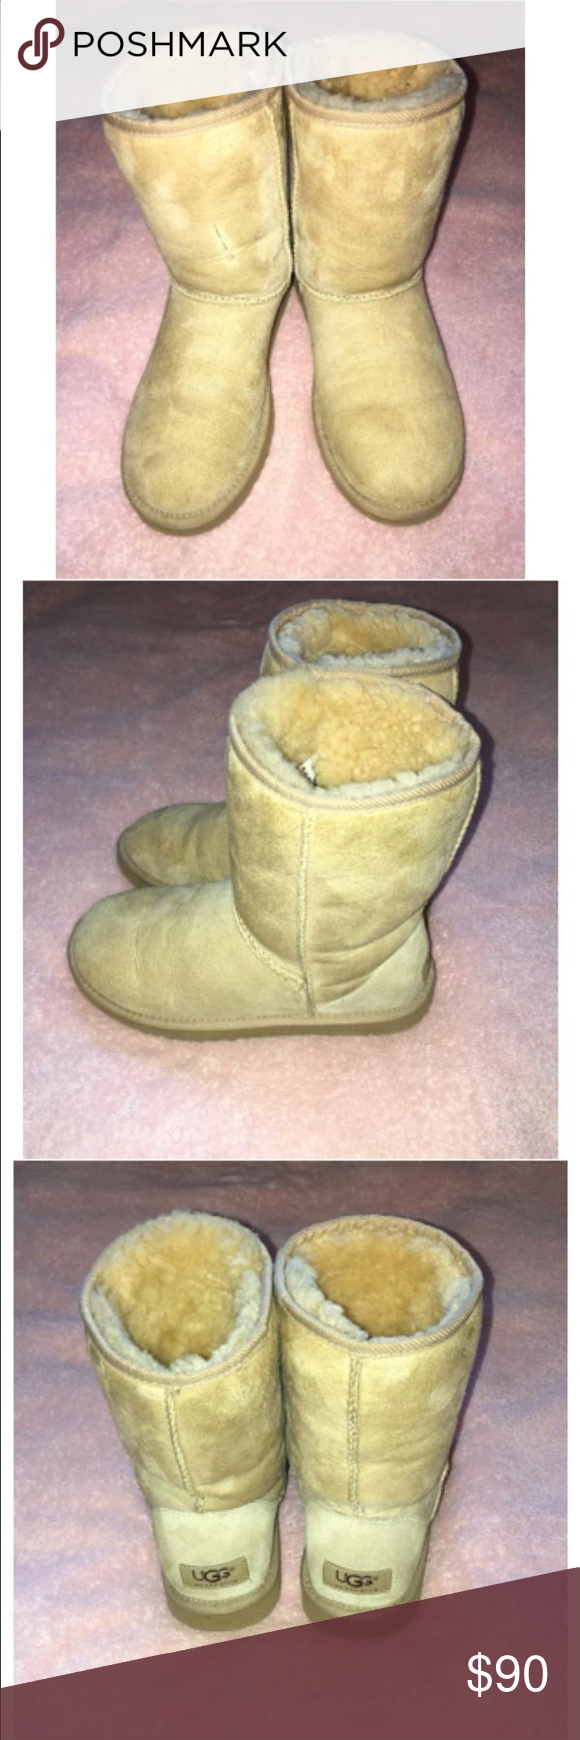 UGG Booties In good condition UGG Australia beige/tan booties. Size 7 Woman UGG Shoes Winter & Rain Boots